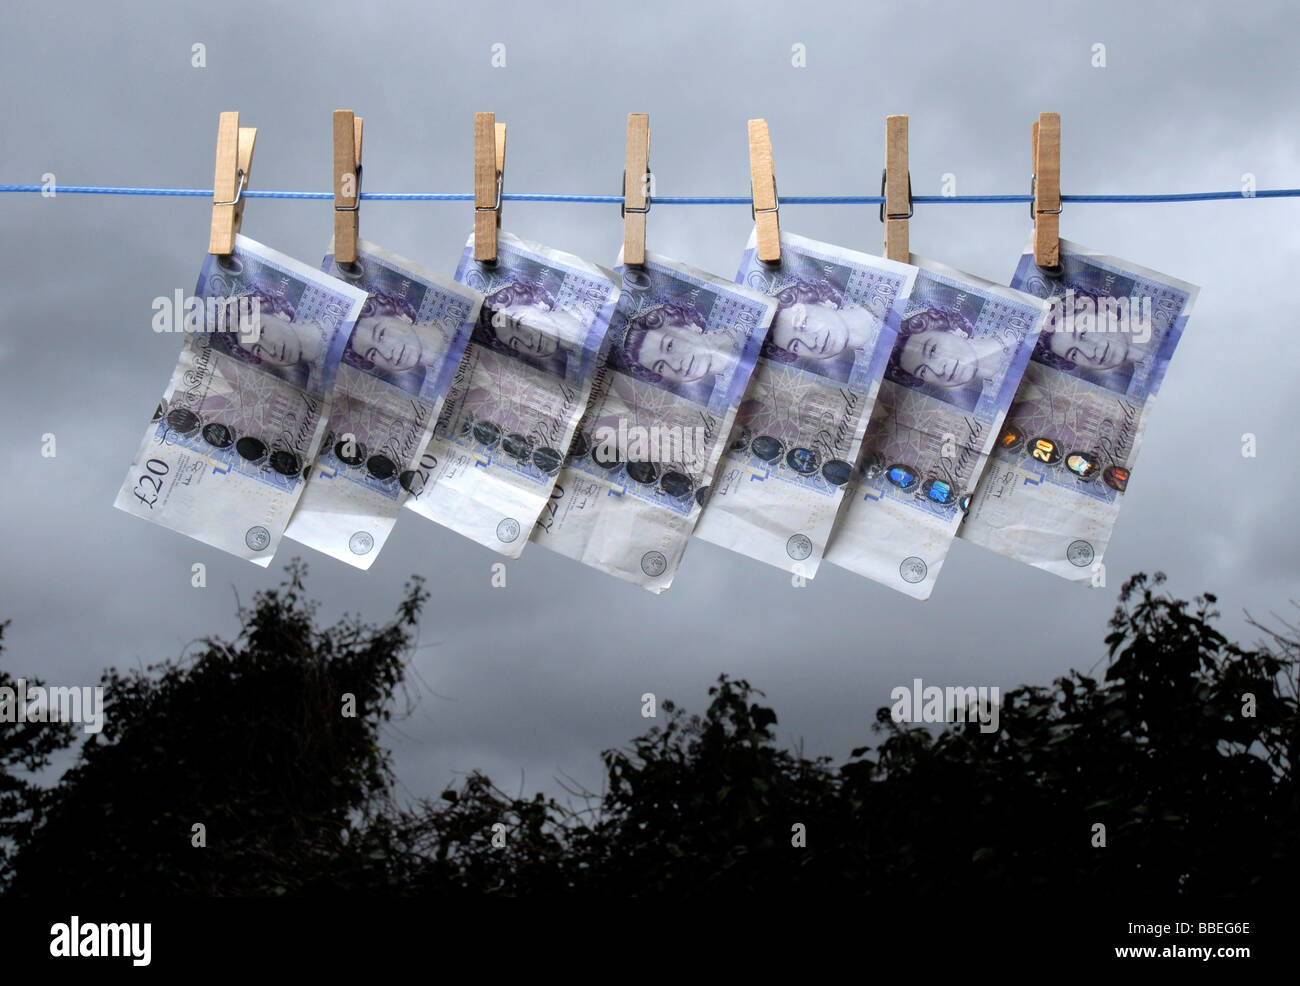 £20 notes on a washing line - Stock Image